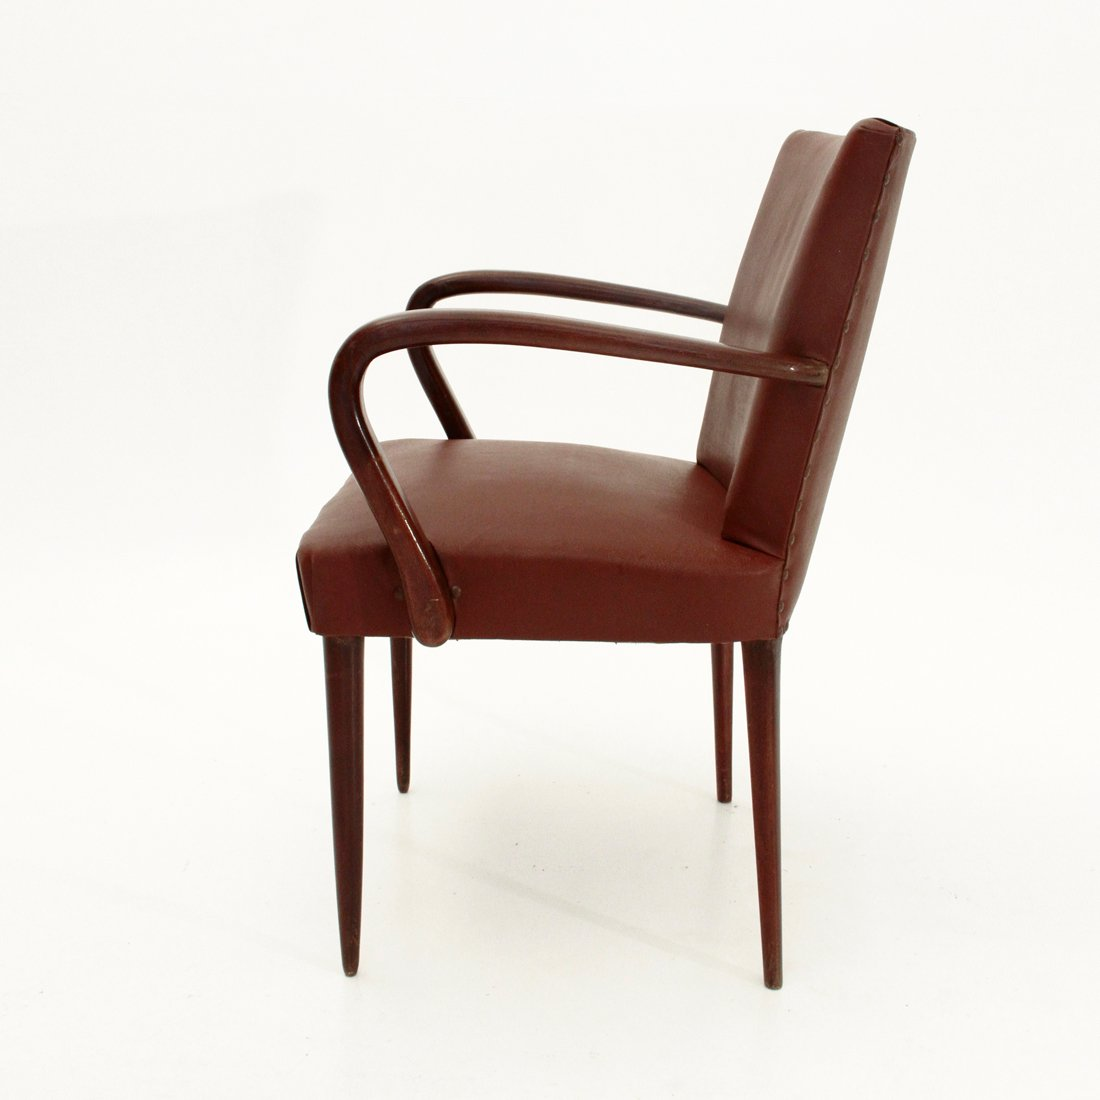 Italian art deco armchair 1930s for sale at pamono for Chair design 1930